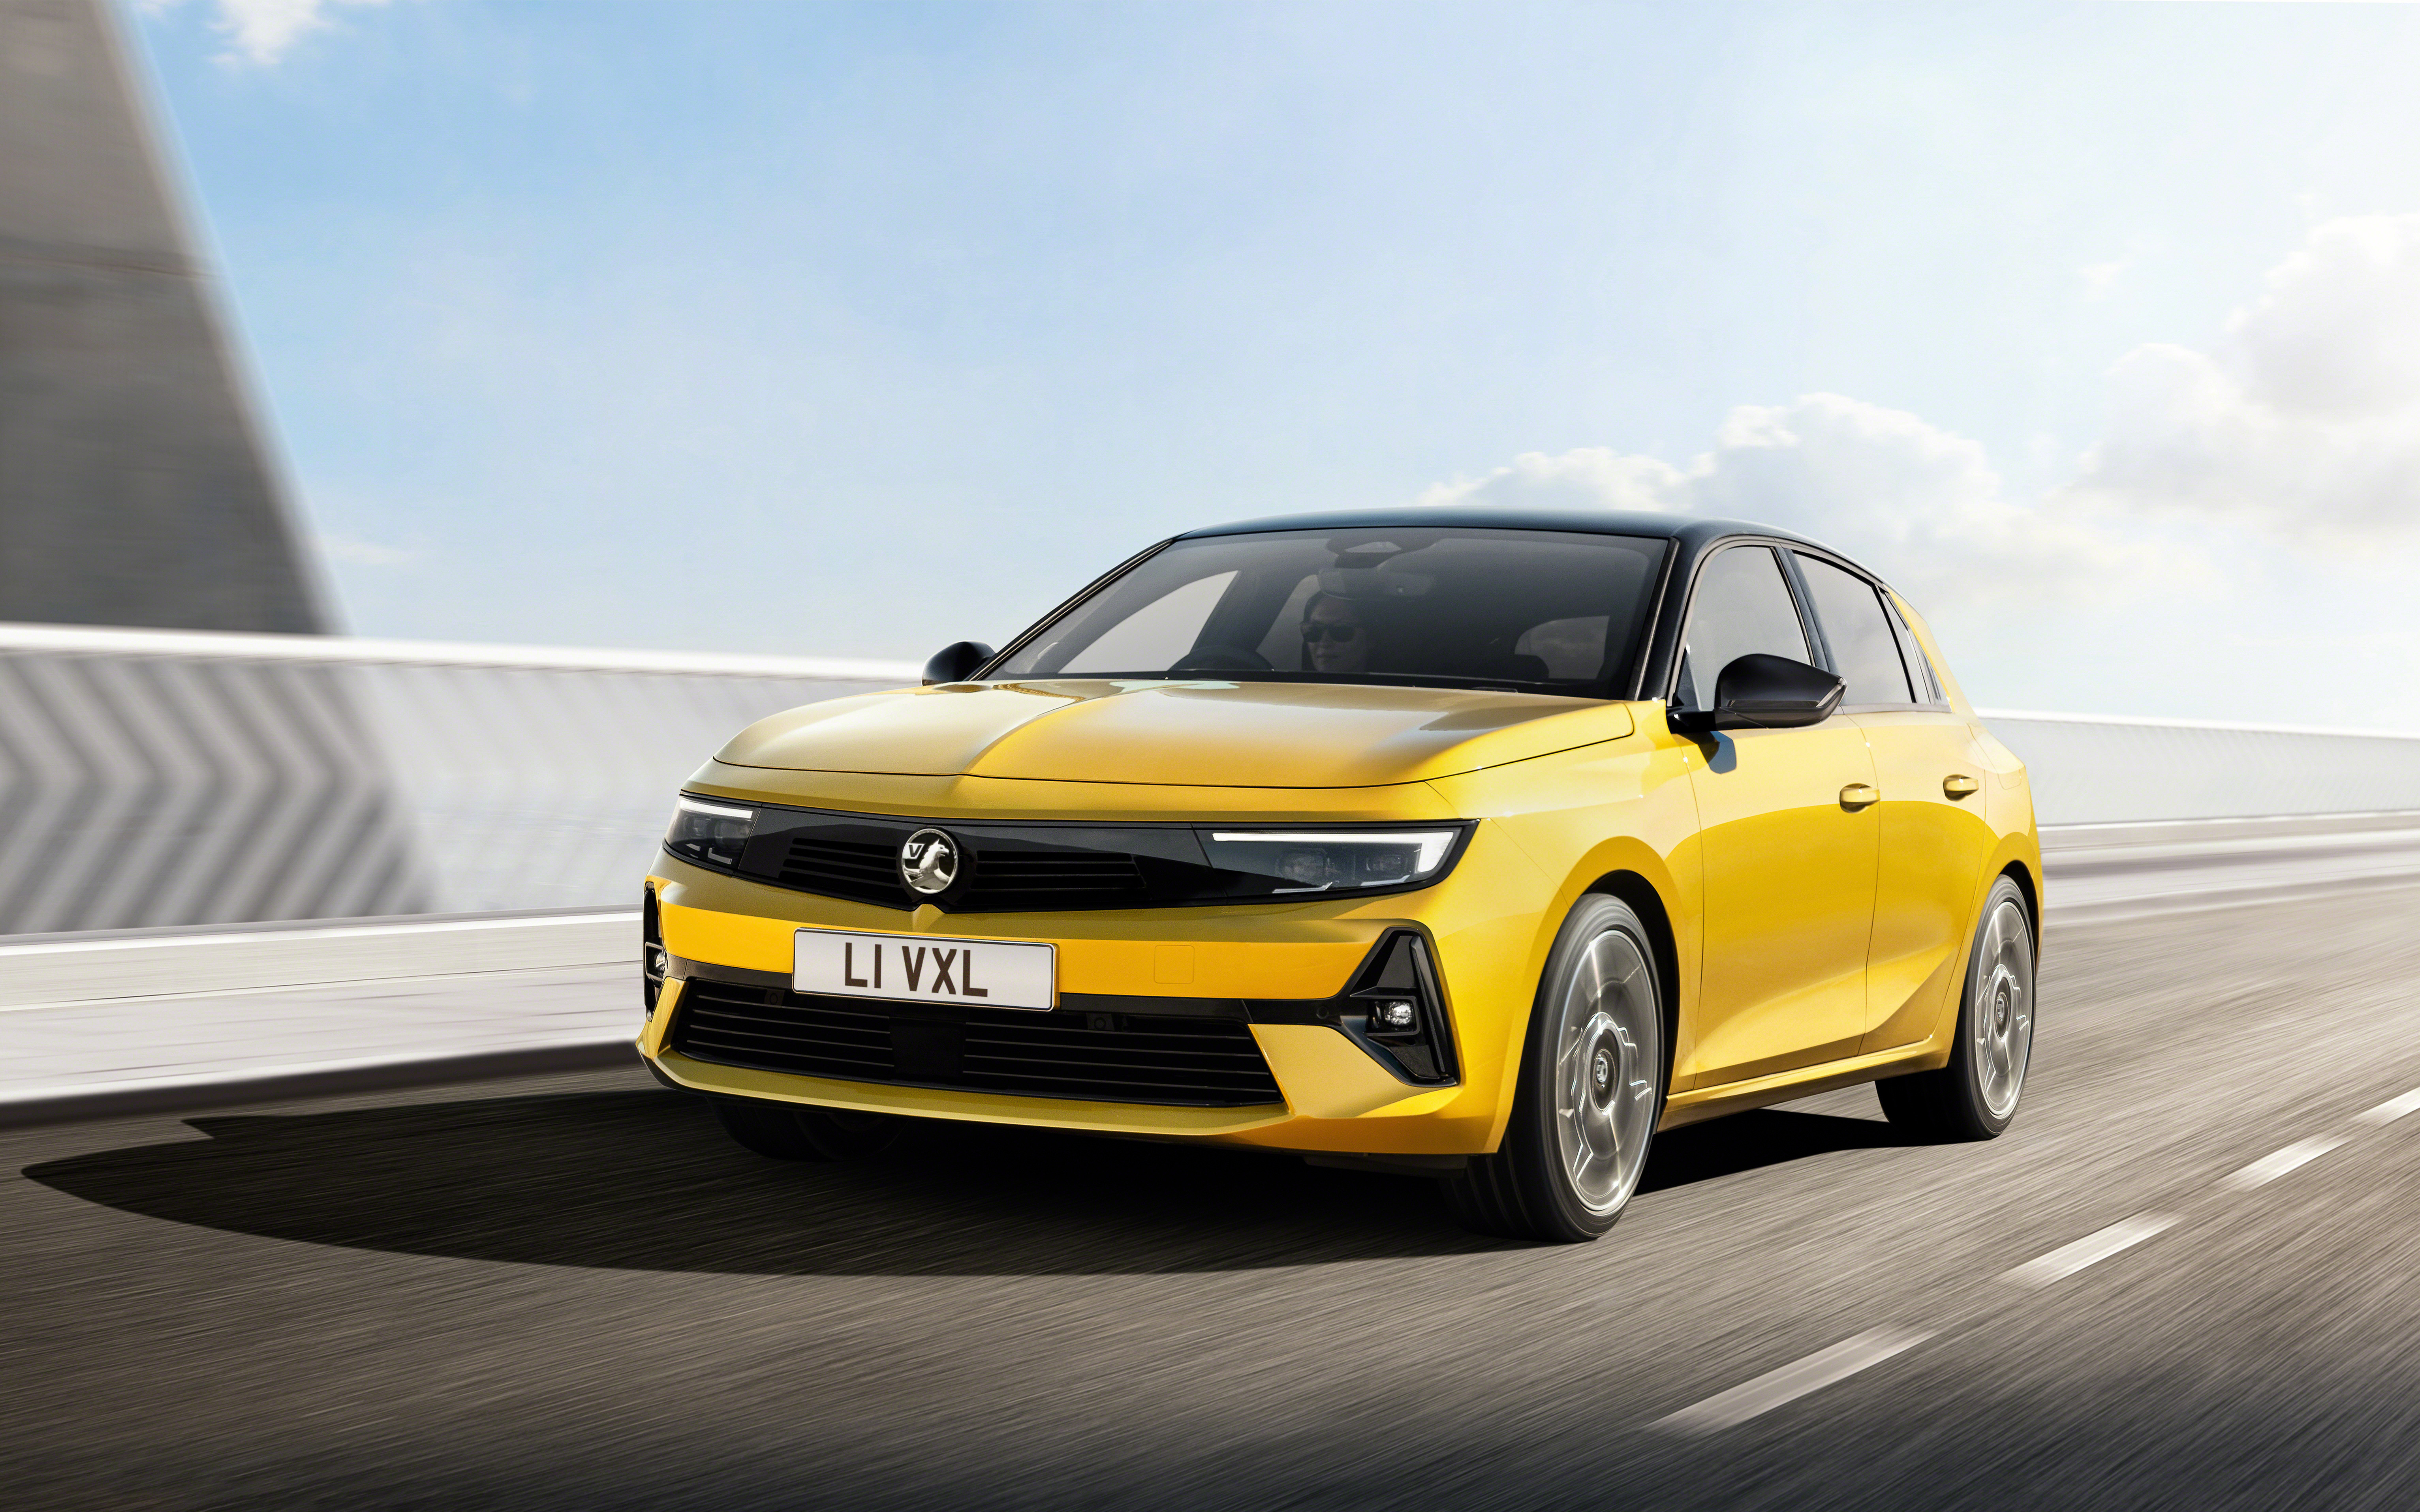 Vauxhall/Opel Launches New Astra Compact With EV Due 2023